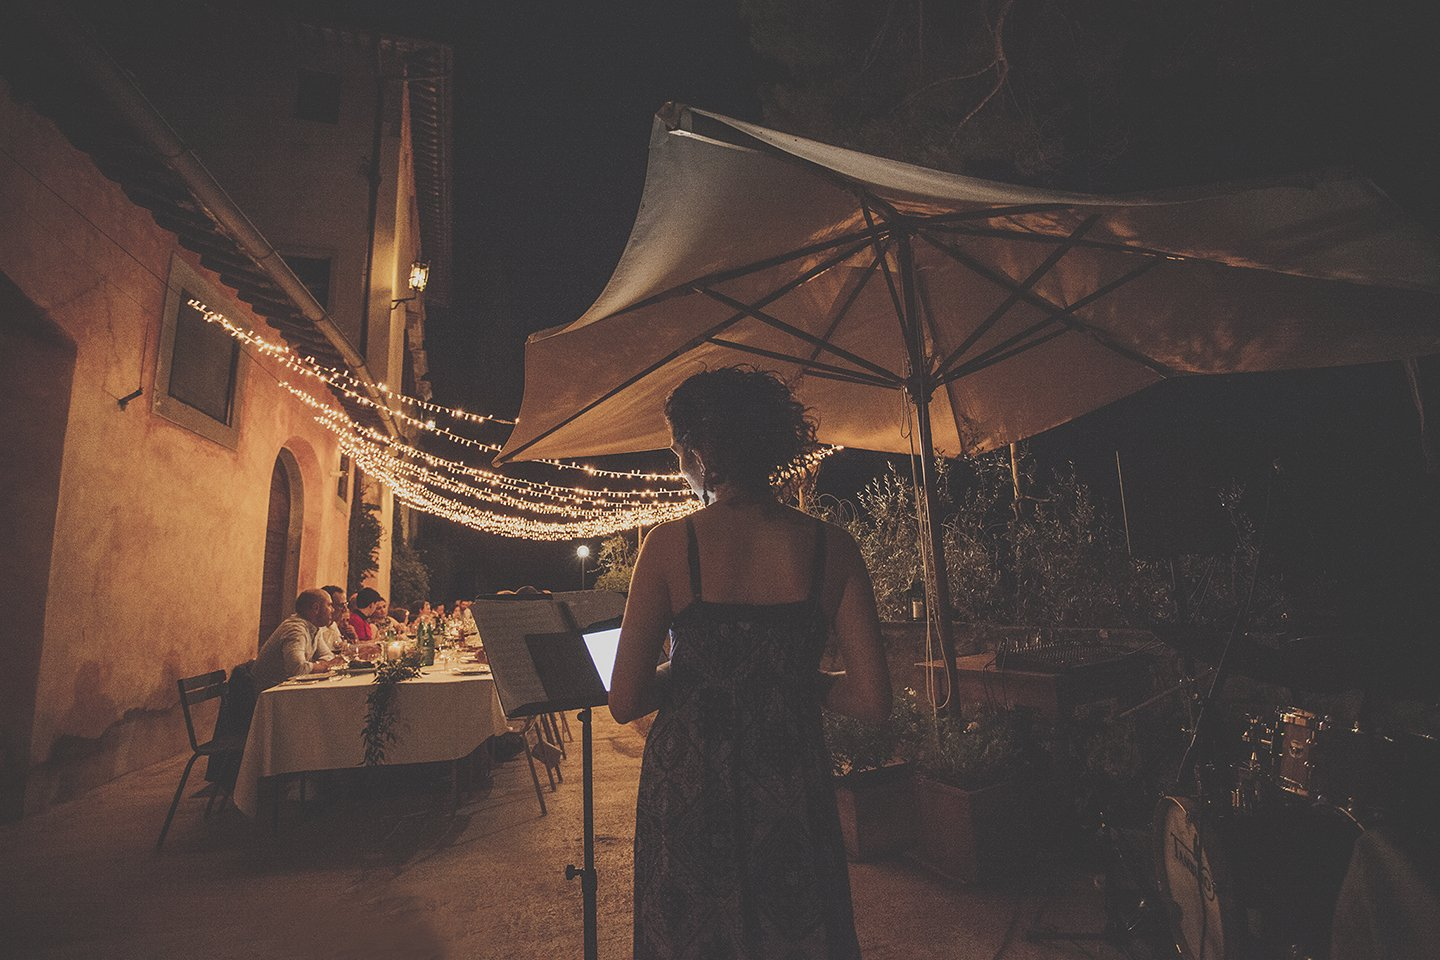 music-entertainement-rehersal-wedding-dinner-vignamaggio-tuscany